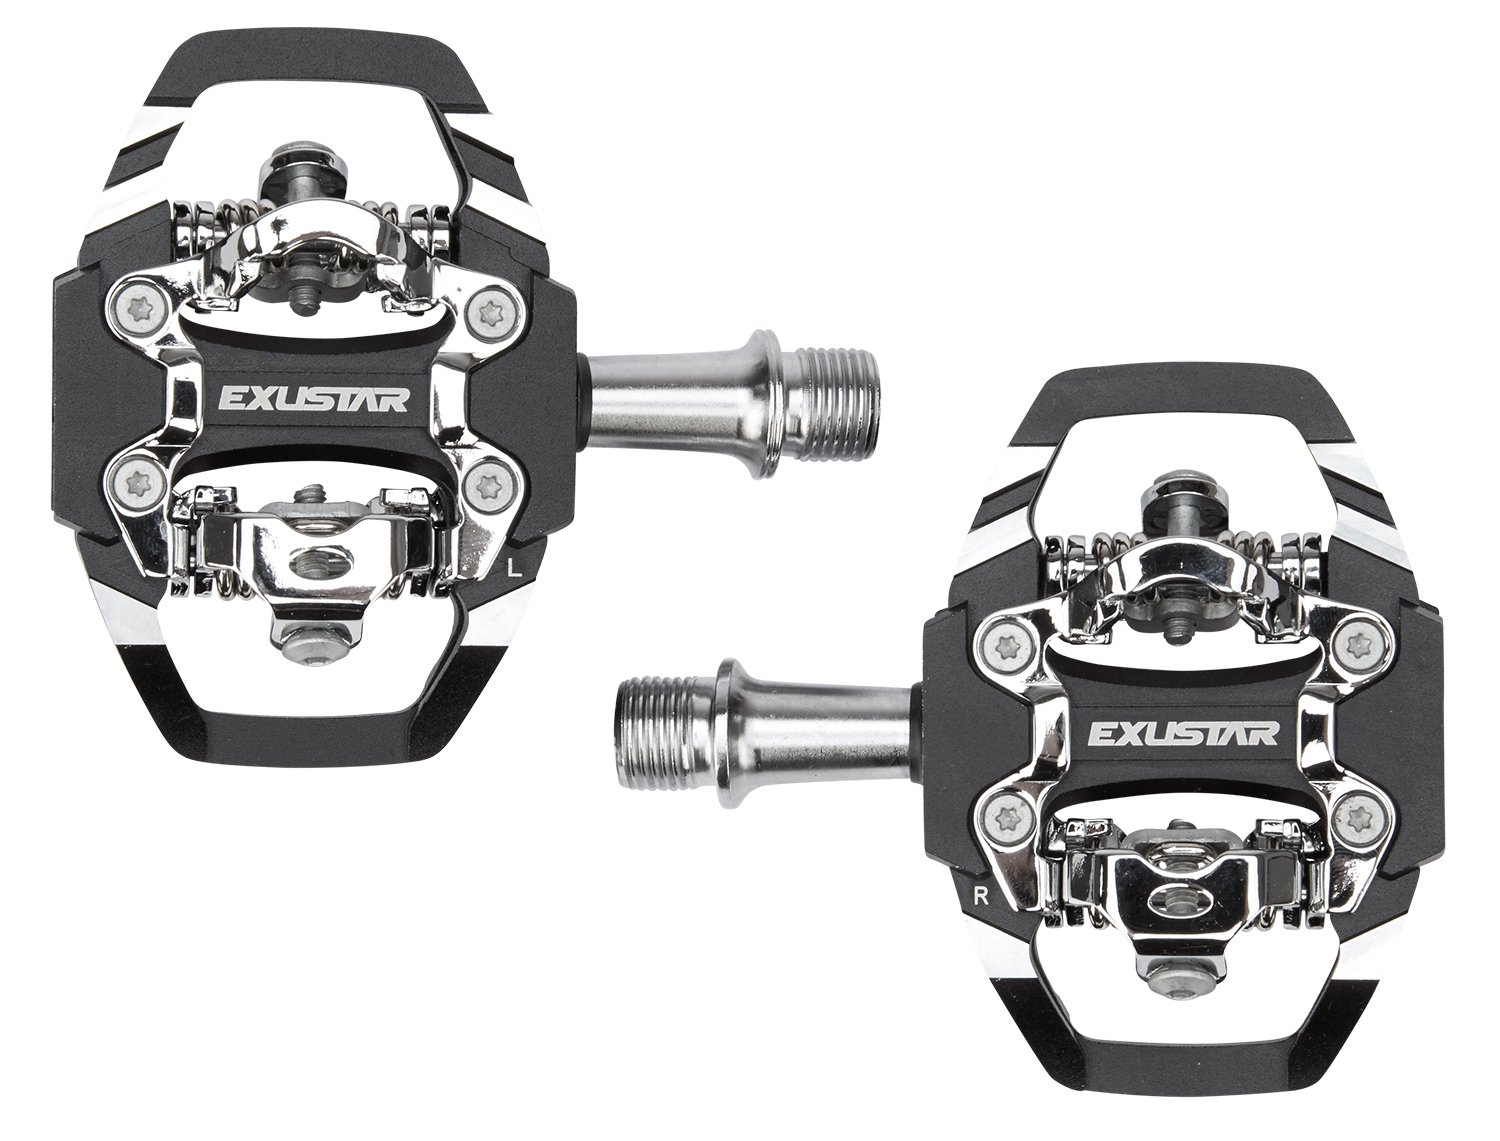 Exustar Pedaler Trail SPD til MTB - Model PM228 | Pedals